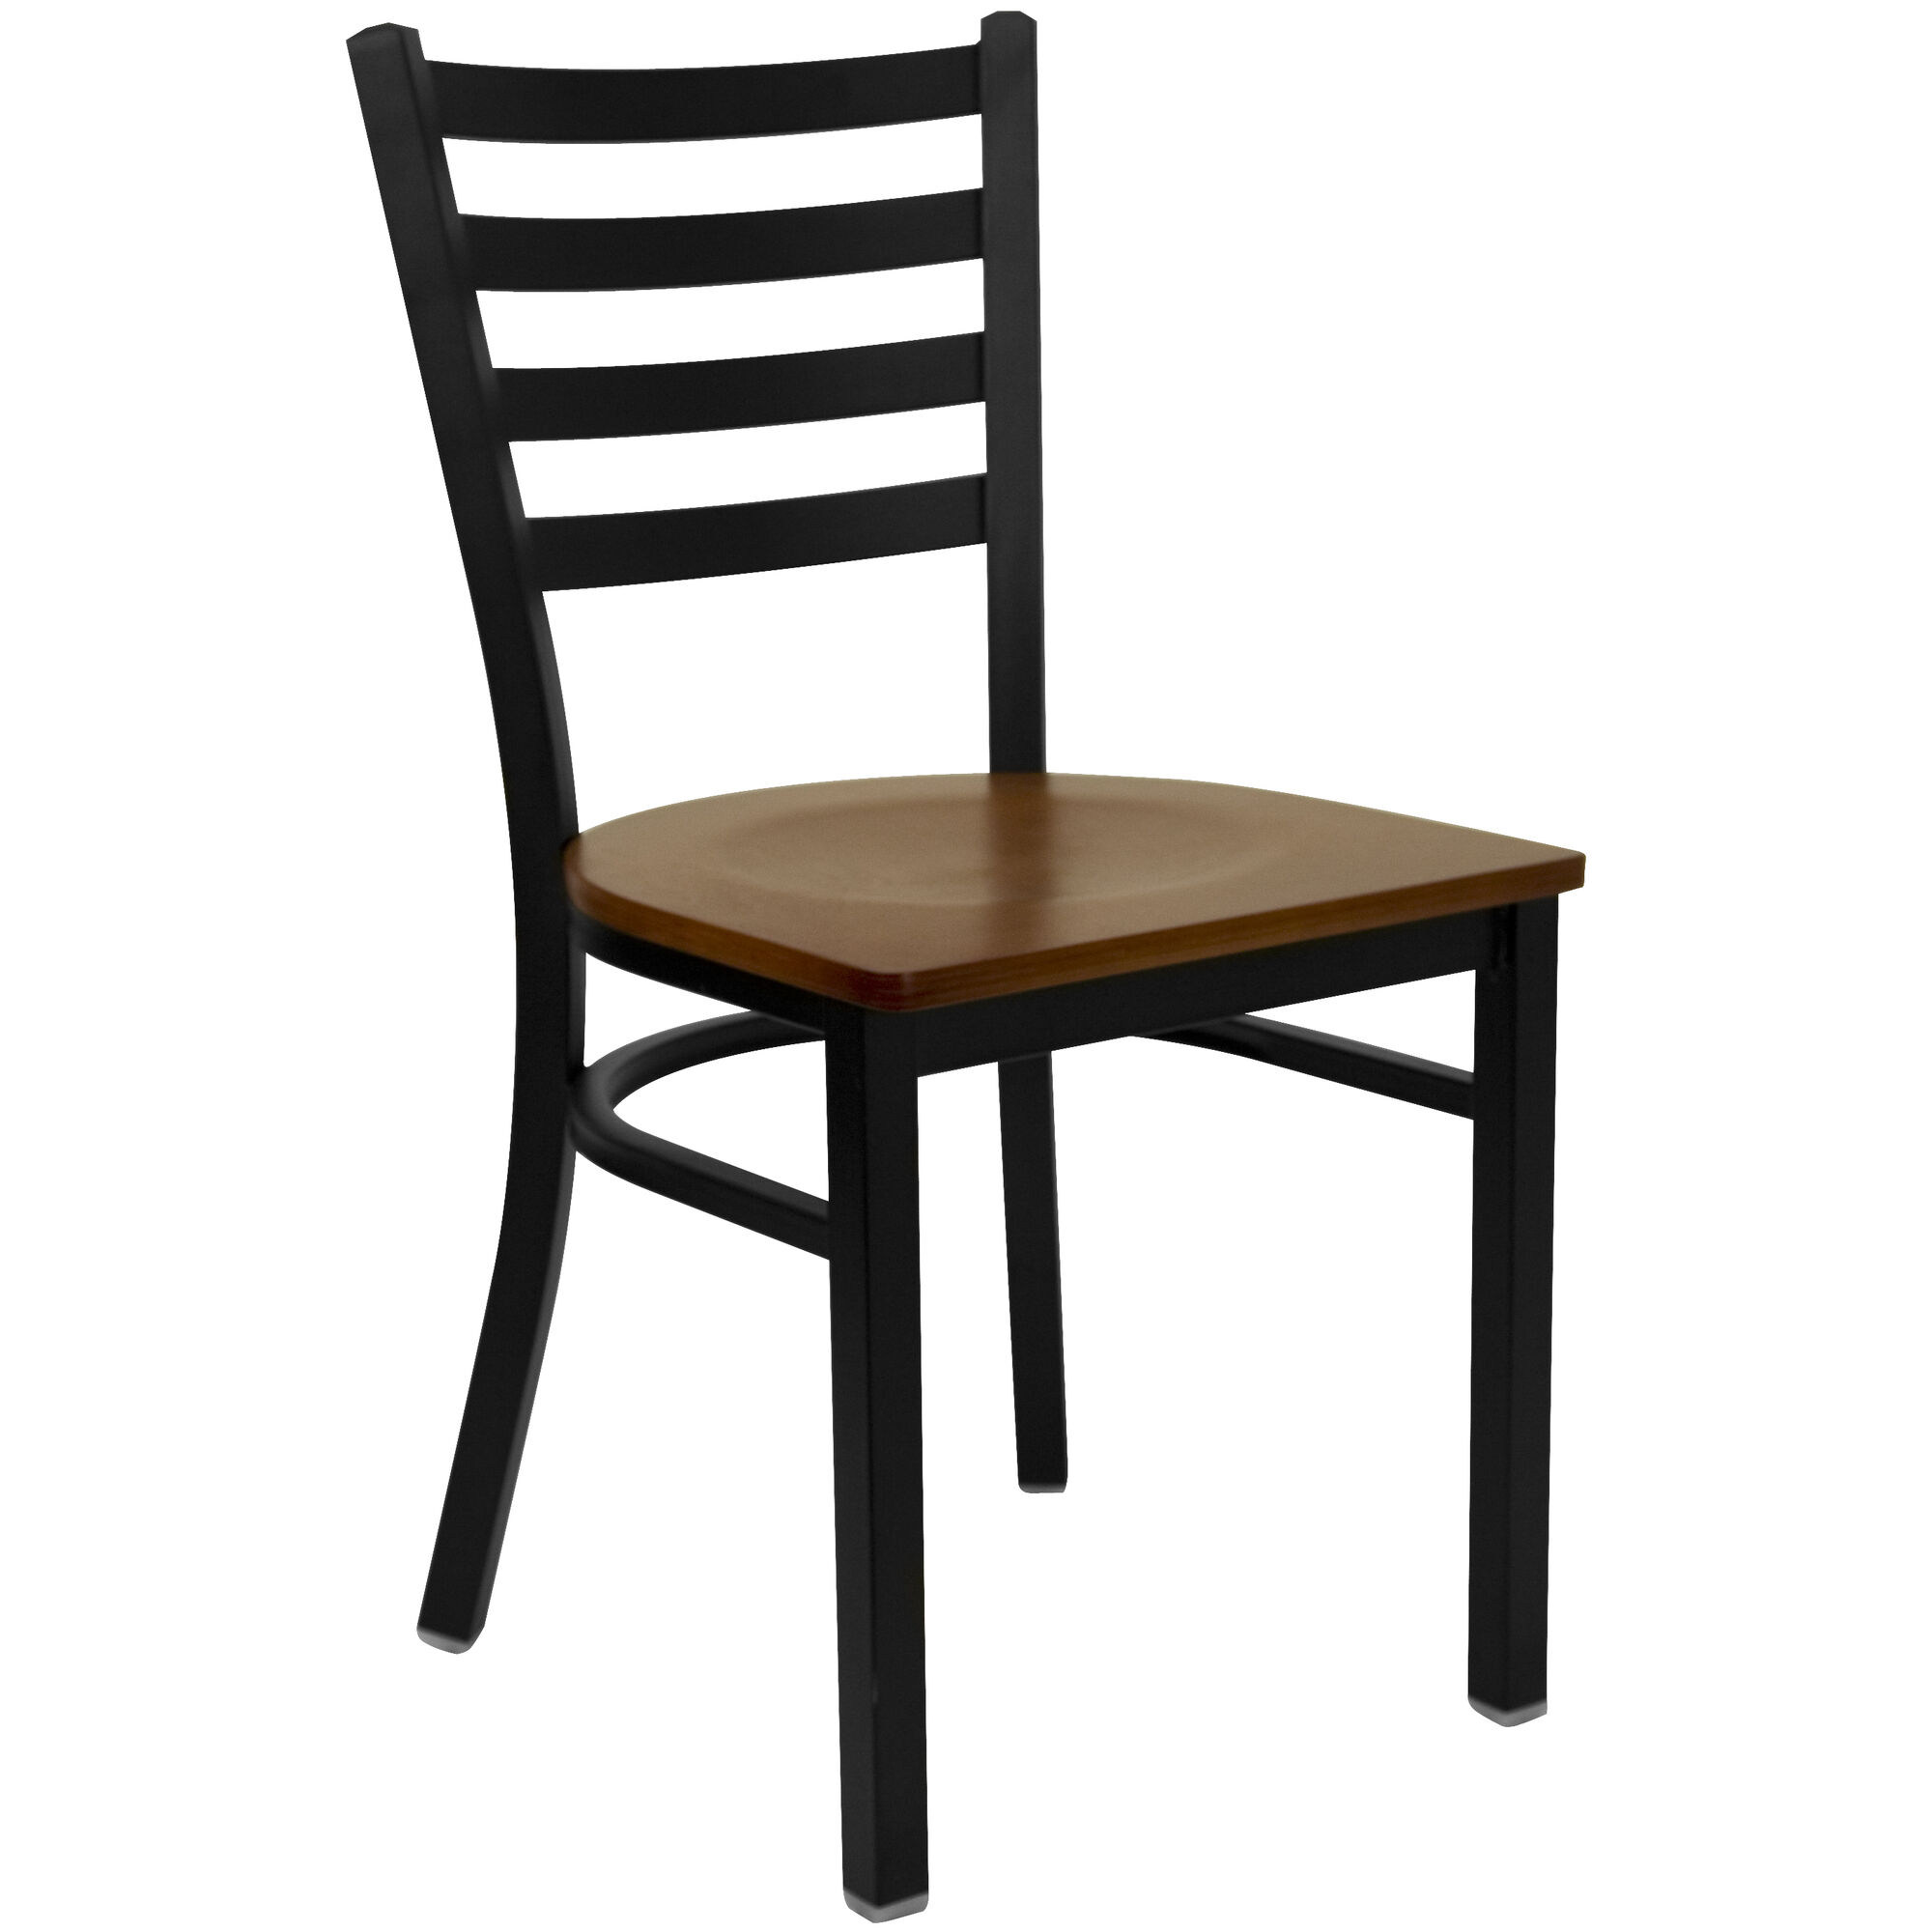 restaurantfurniture4less metal chairs